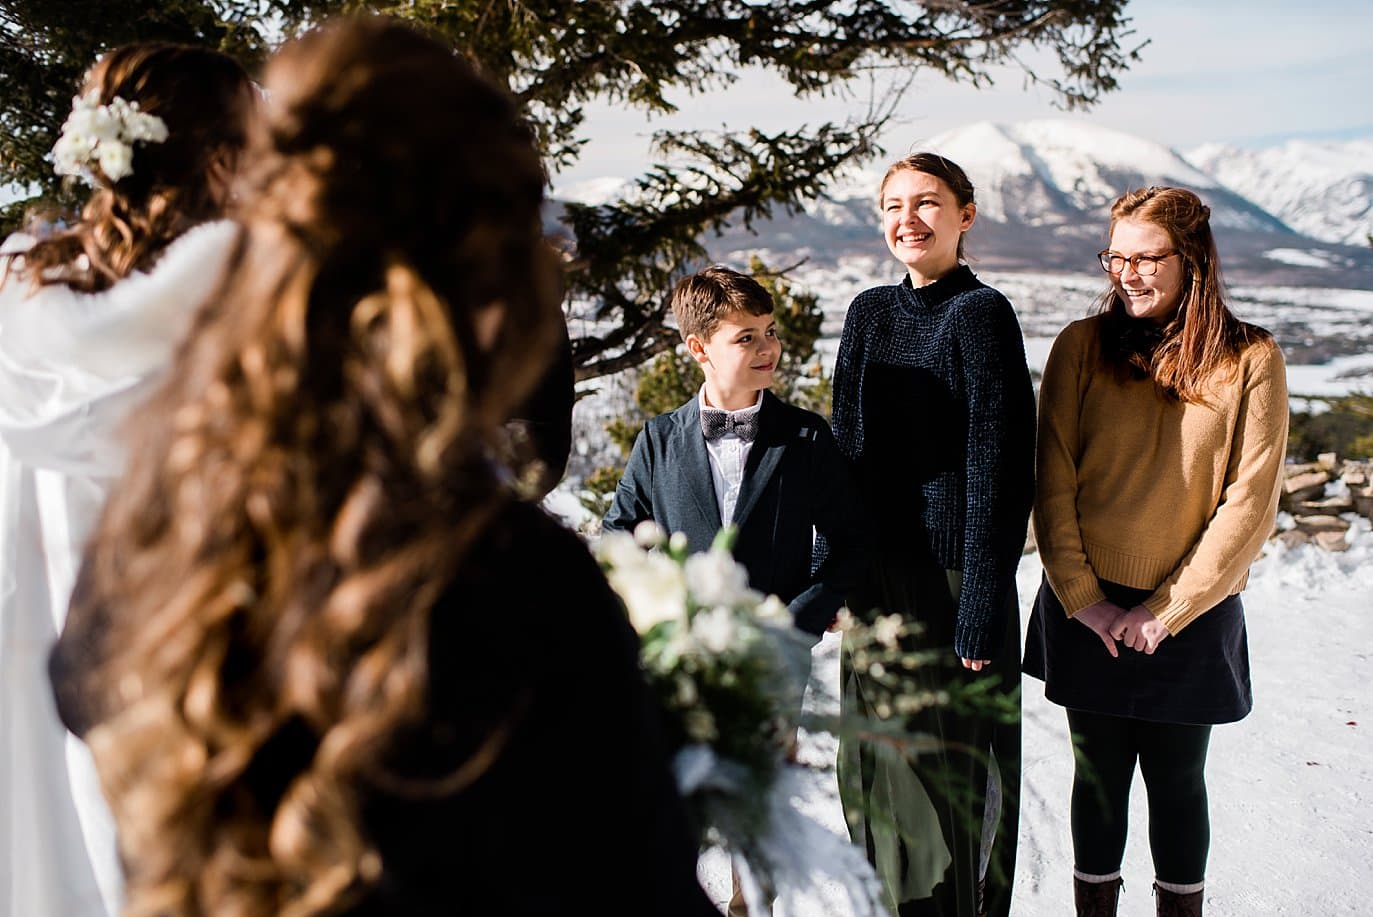 wedding ceremony with kids at Sapphire Point Elopement by Breckenridge wedding photographer Jennie Crate Photographer